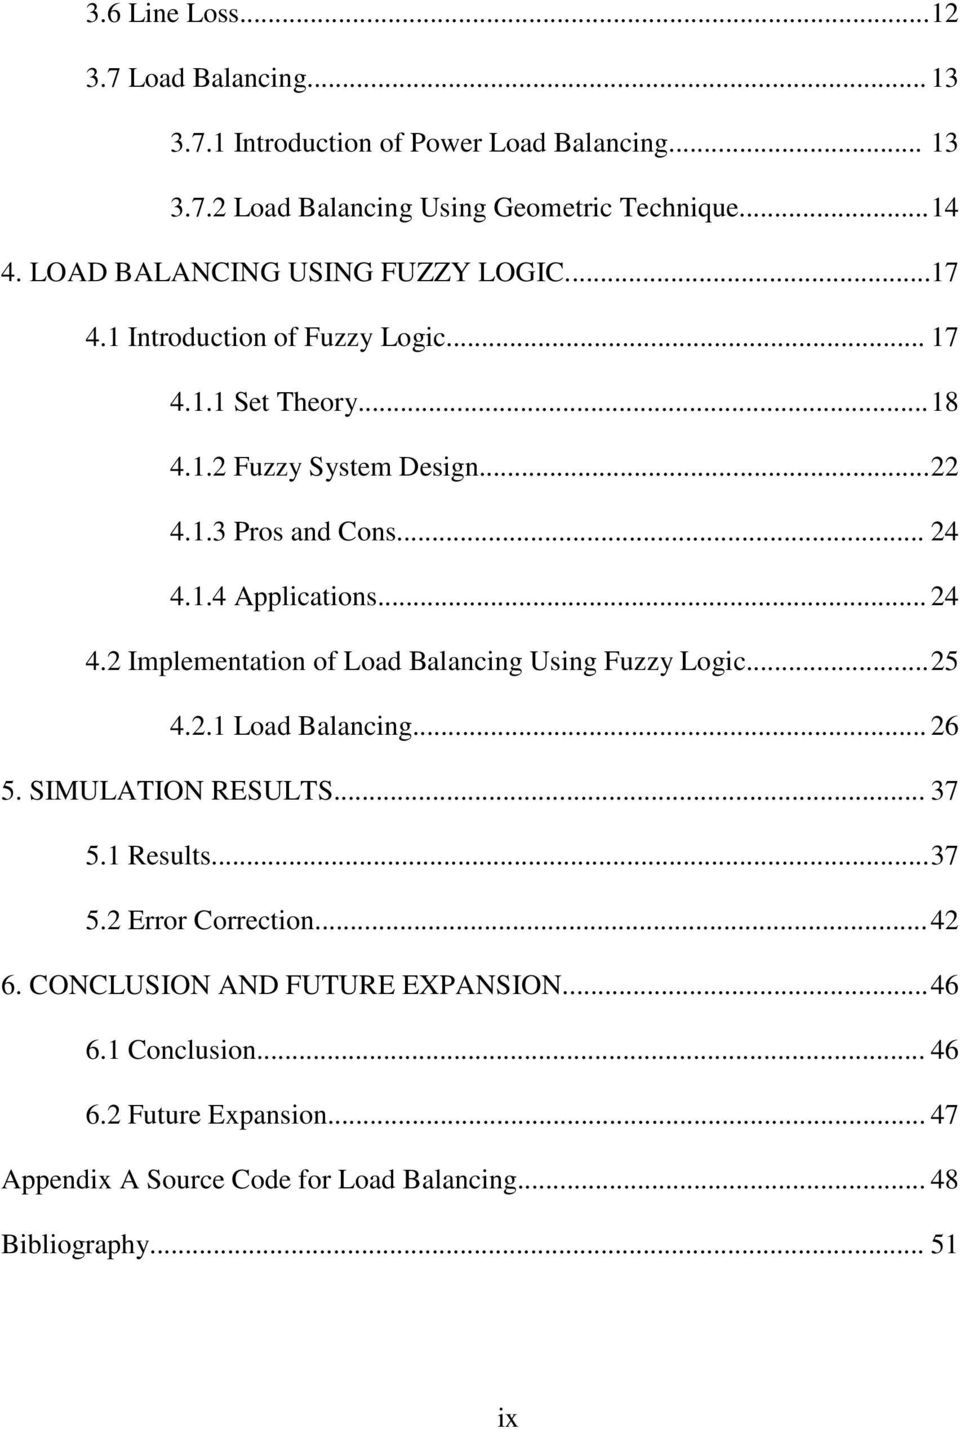 .. 24 4.2 Implementation of Load Balancing Using Fuzzy Logic... 25 4.2.1 Load Balancing... 26 5. SIMULATION RESULTS... 37 5.1 Results... 37 5.2 Error Correction.